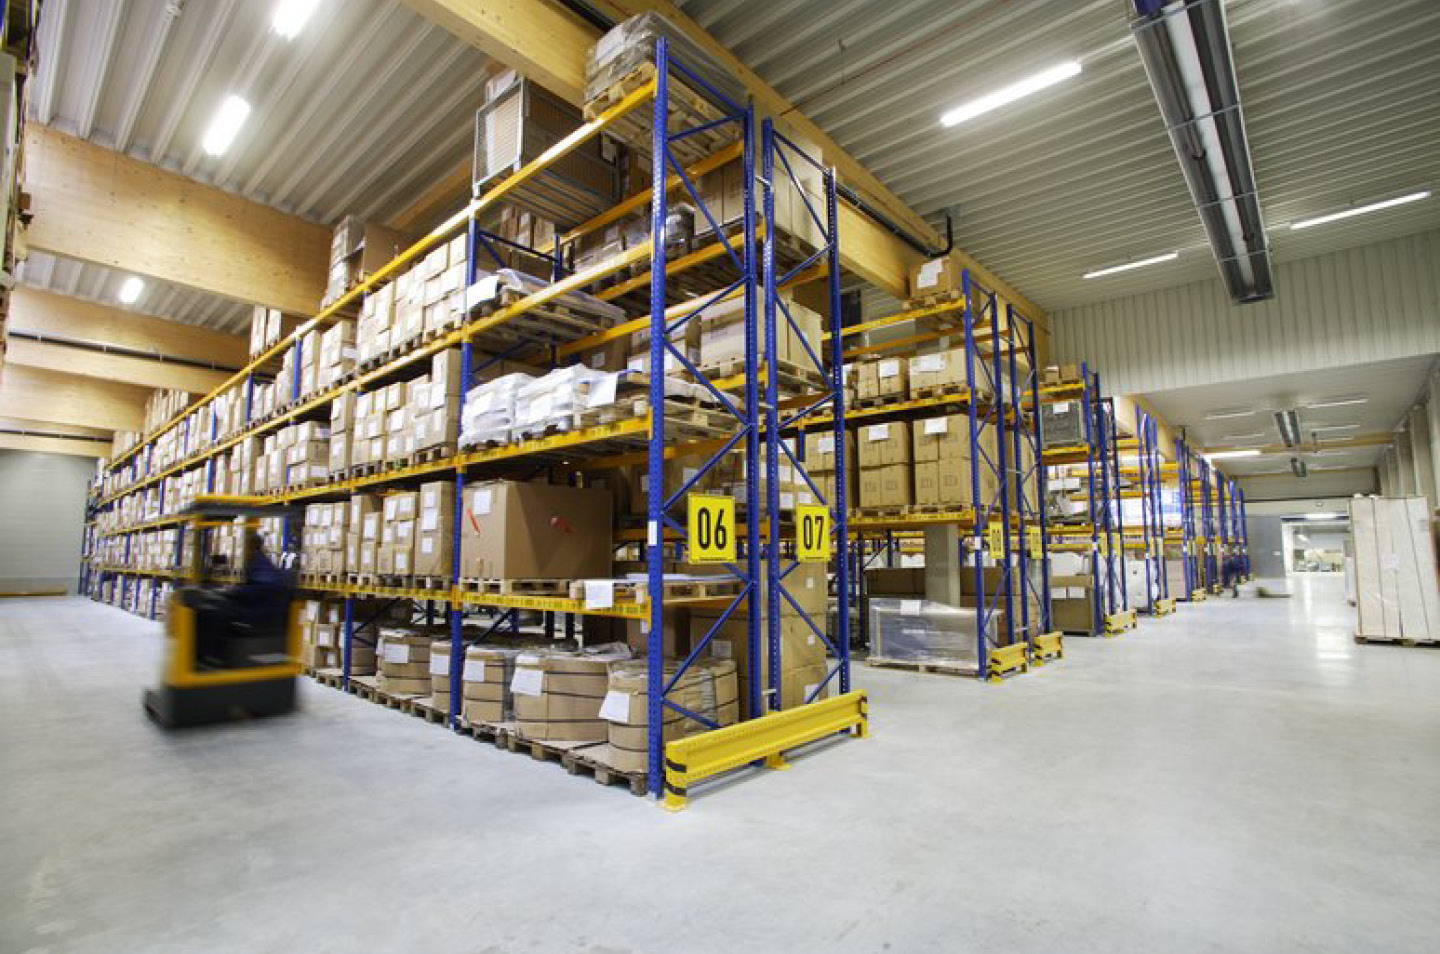 Neues Logistikcenter